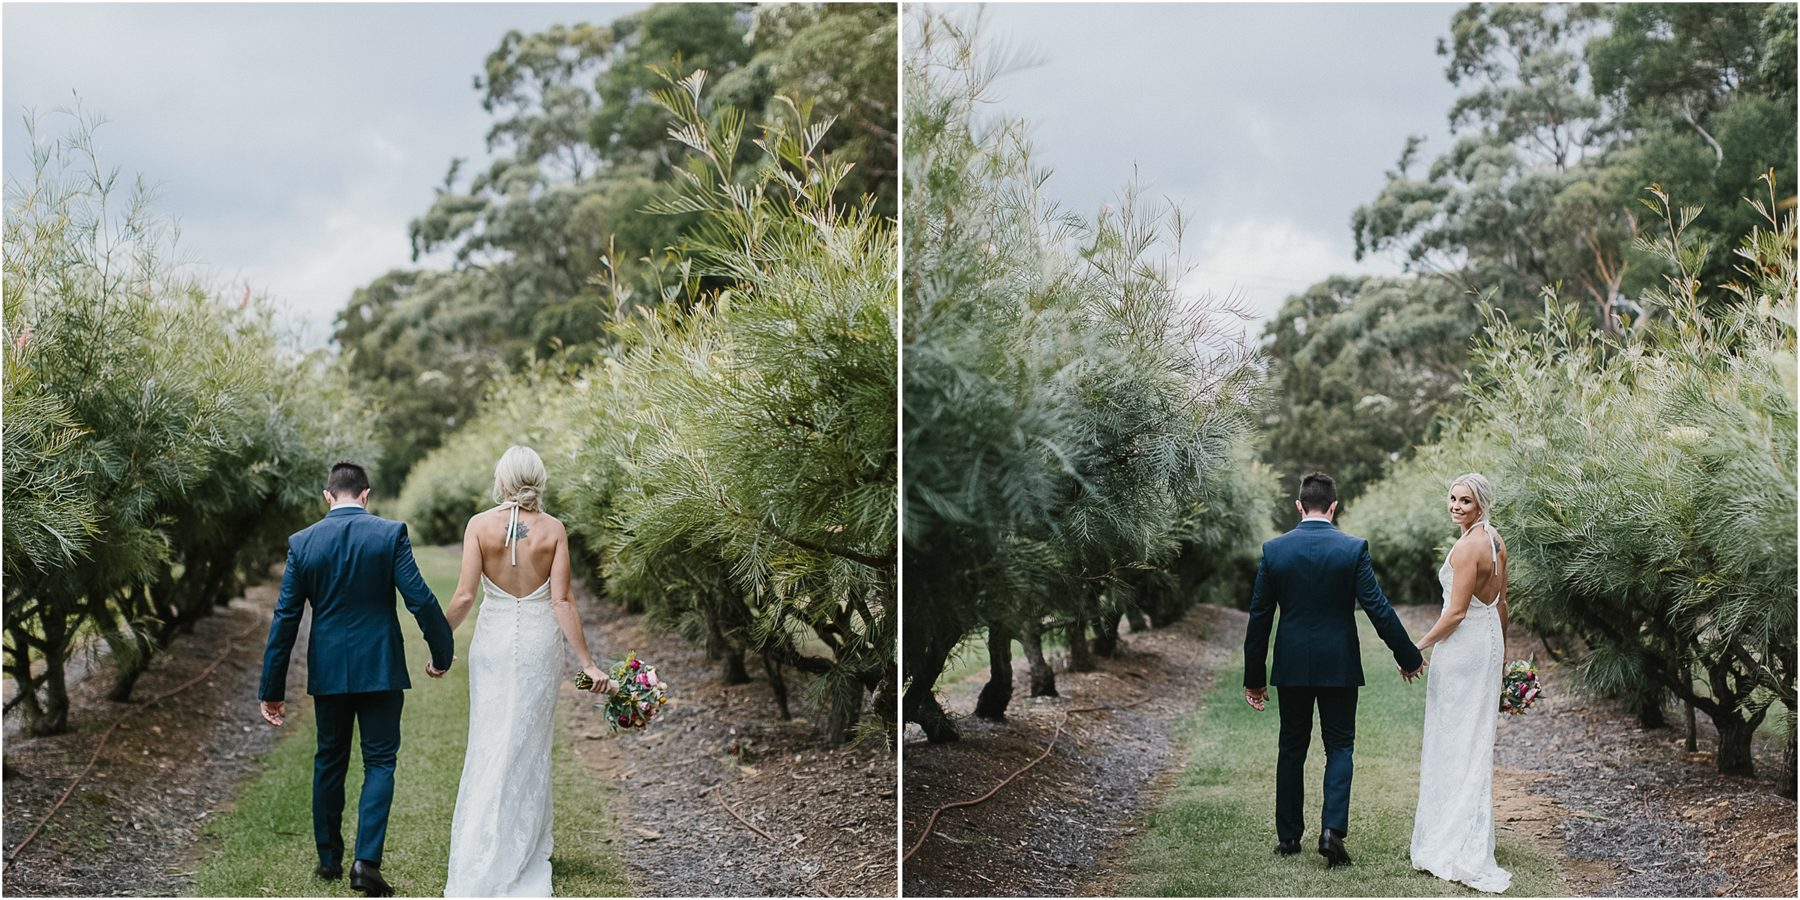 Courtney-Josh-Growwild-Bowral-southernhighlans-Wedding-61